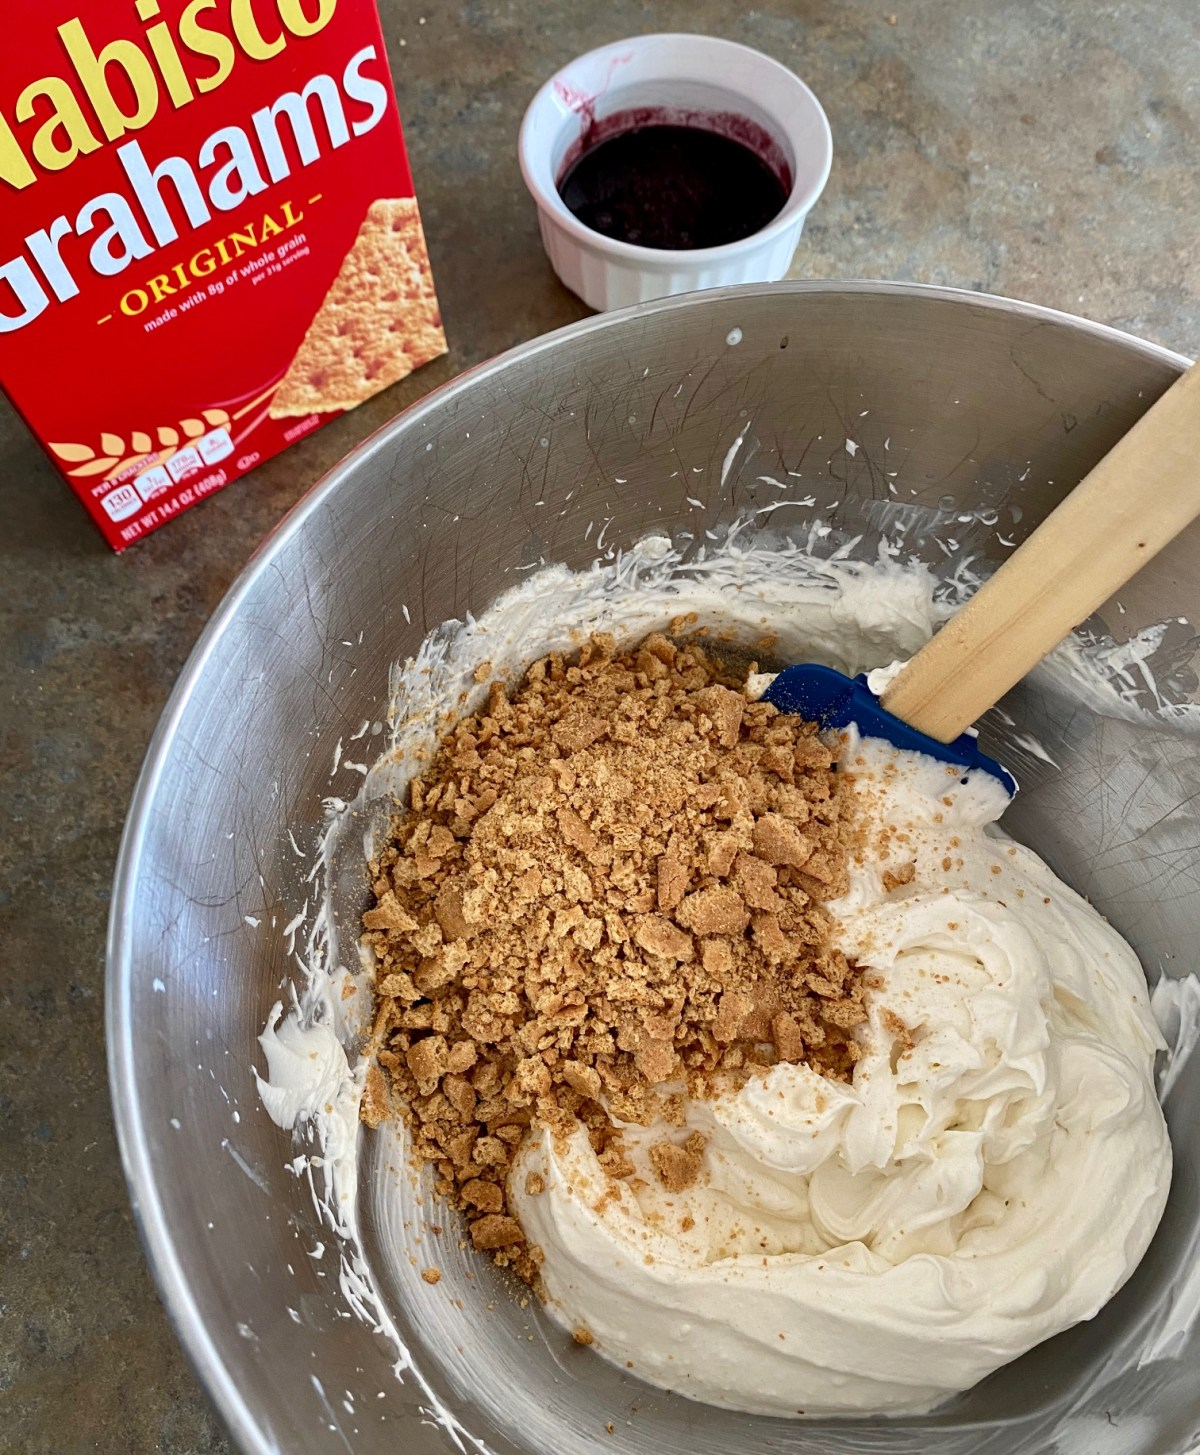 Graham cracker pieces folded into the ice cream base. #nochurnicecream #icecreamrecipeswithoutanicecreammaker #icecreamfromscractch #howtomakeicecream #easyicecreamrecipe